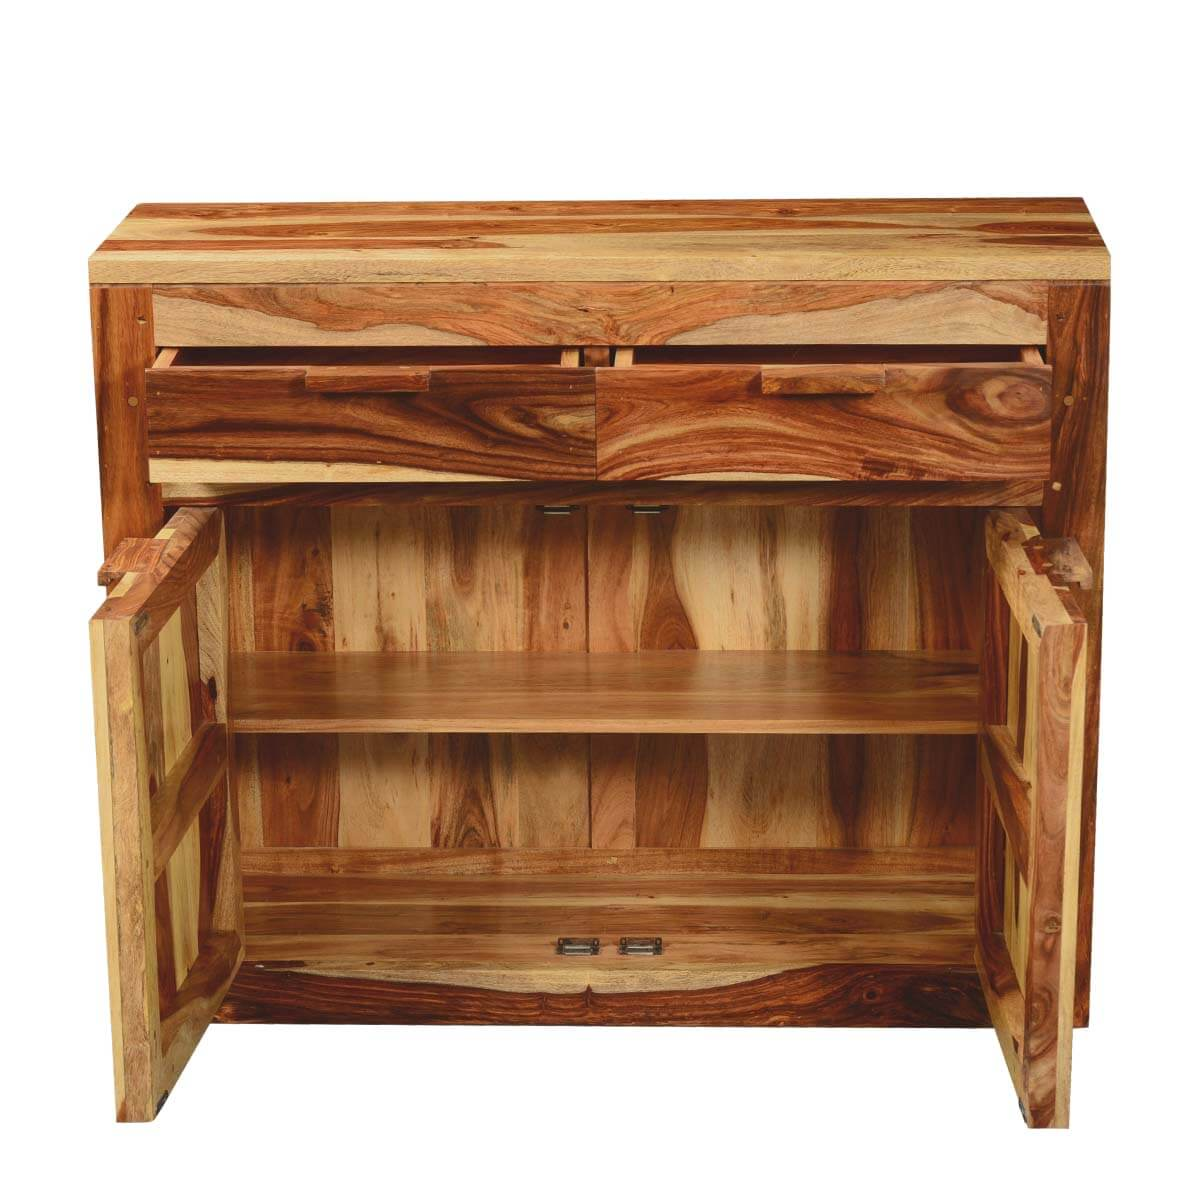 Dallas ranch solid wood acacia kitchen cabinet buffet for Acacia wood kitchen cabinets